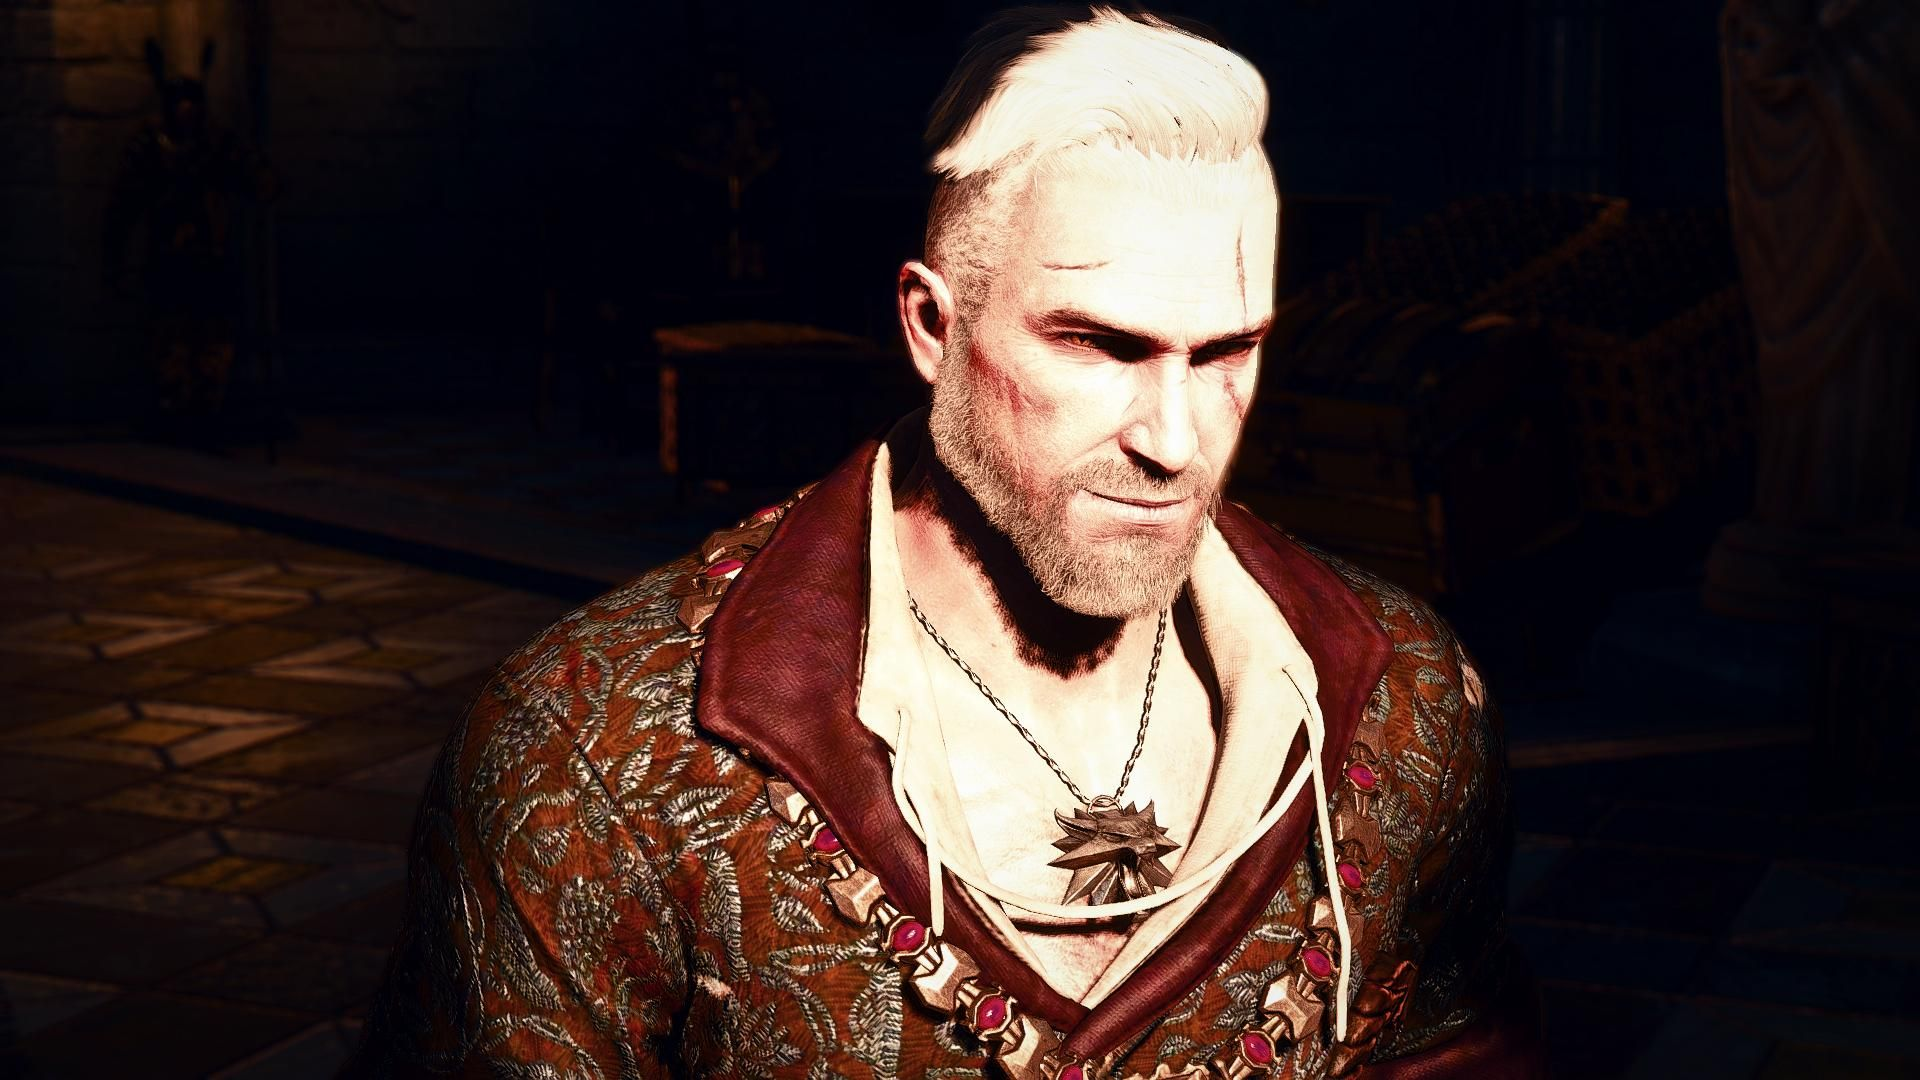 S T E P P I N Geralt Of Rivia The Witcher Books The Witcher Geralt